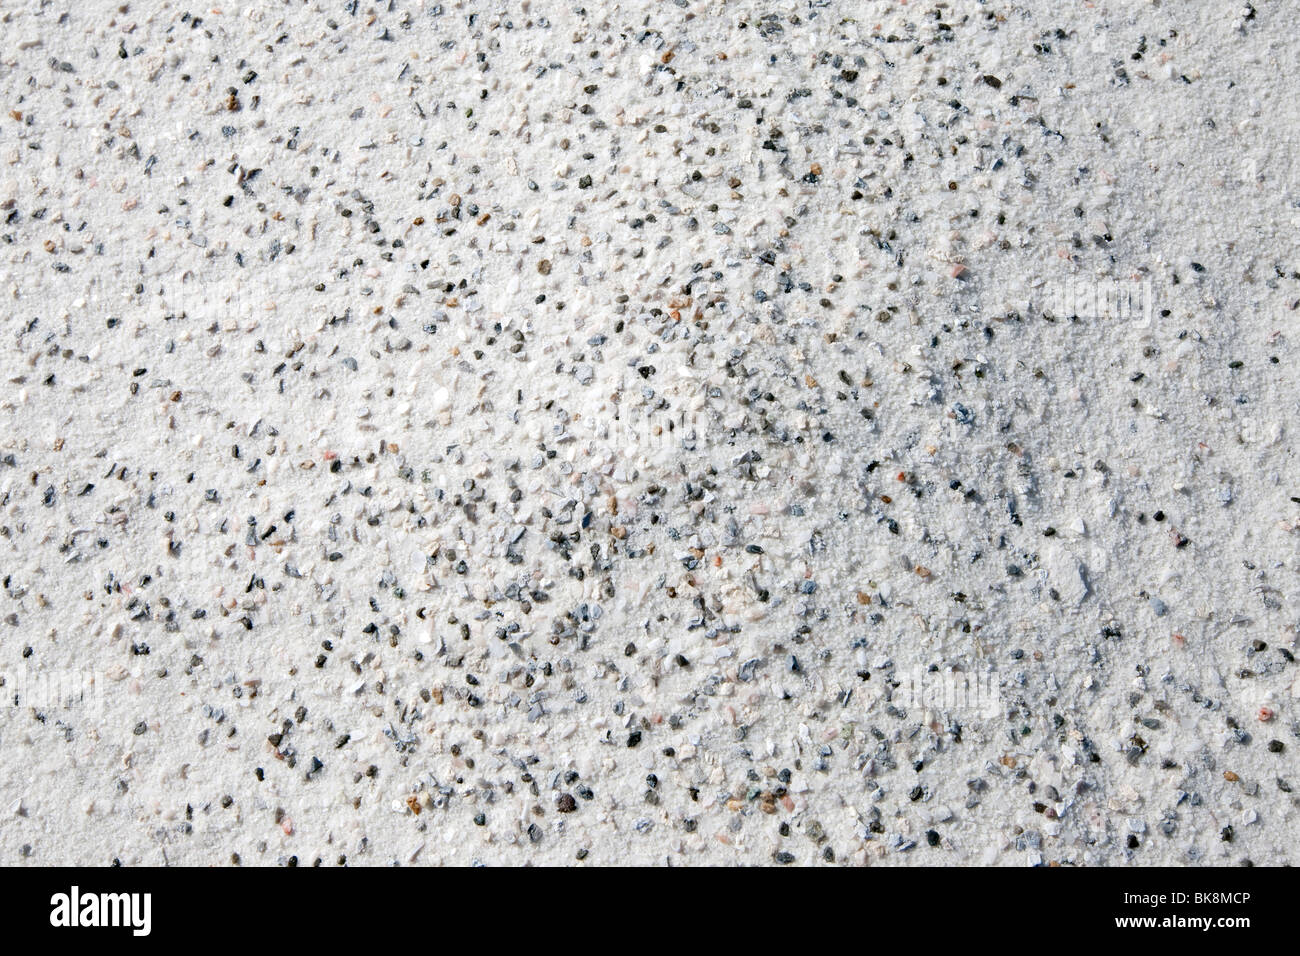 Weathering of rocks to sand - Stock Image